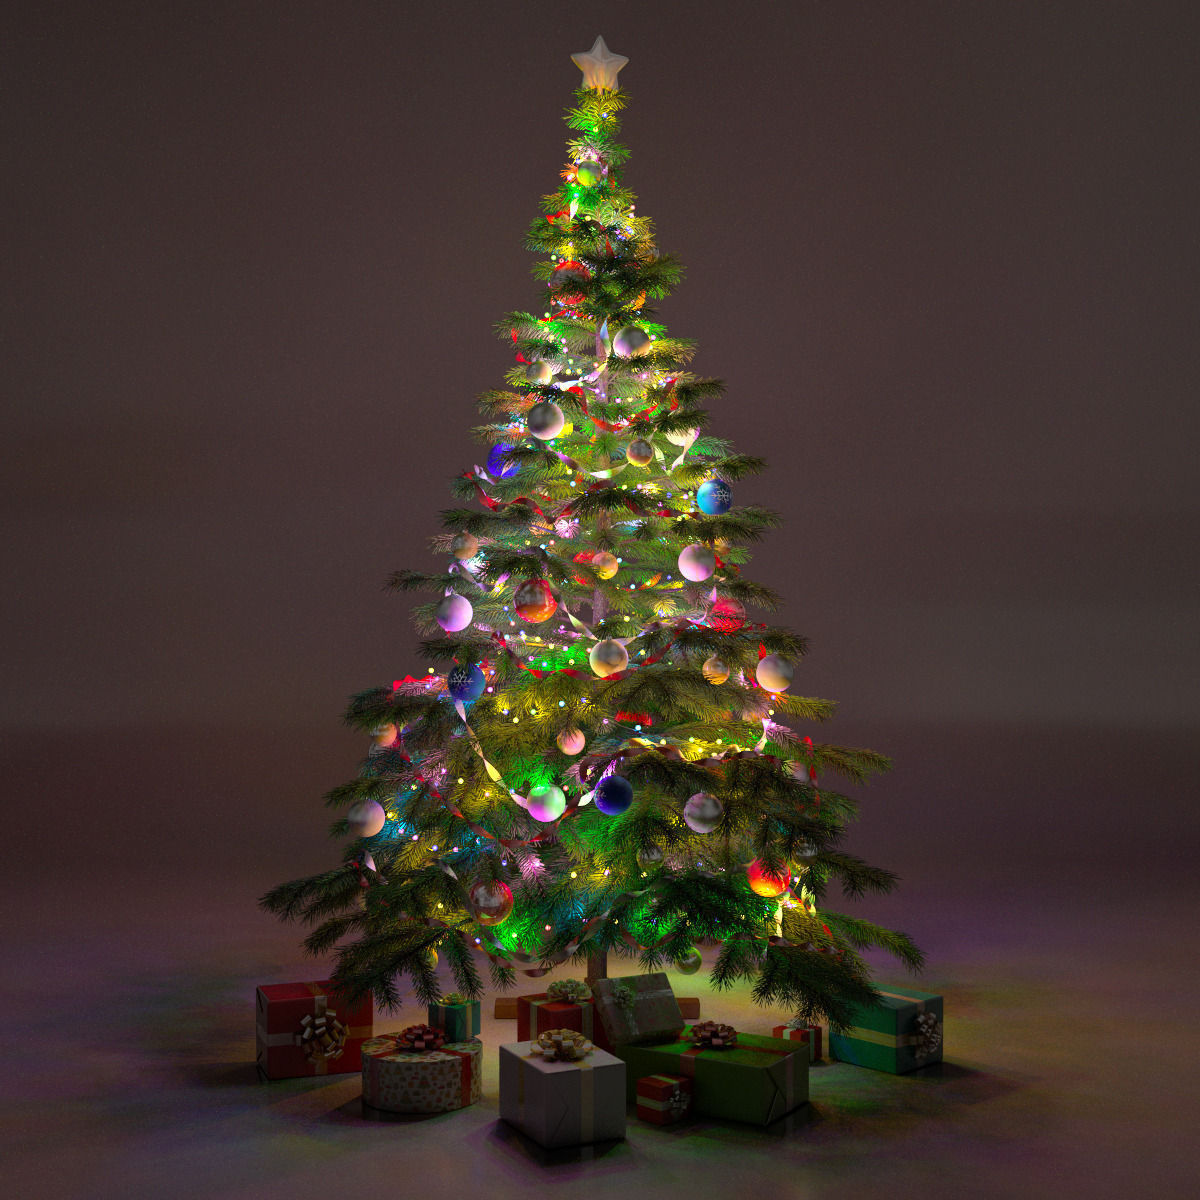 Model Of Christmas Tree: Christmas Tree With Gifts 3D Model .max .obj